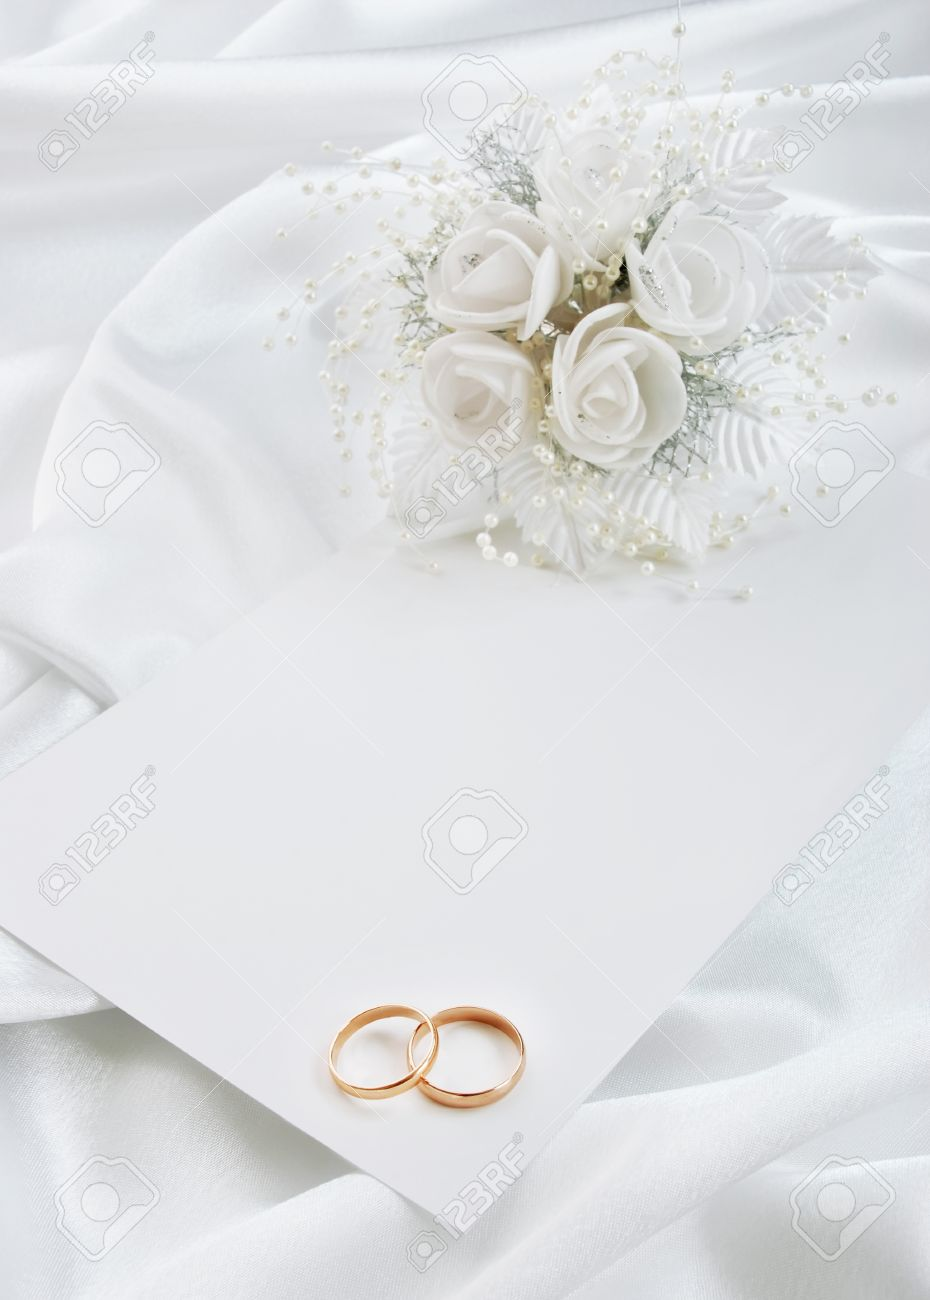 The Wedding Invitation With Wedding Rings And A Bouquet Of The ...